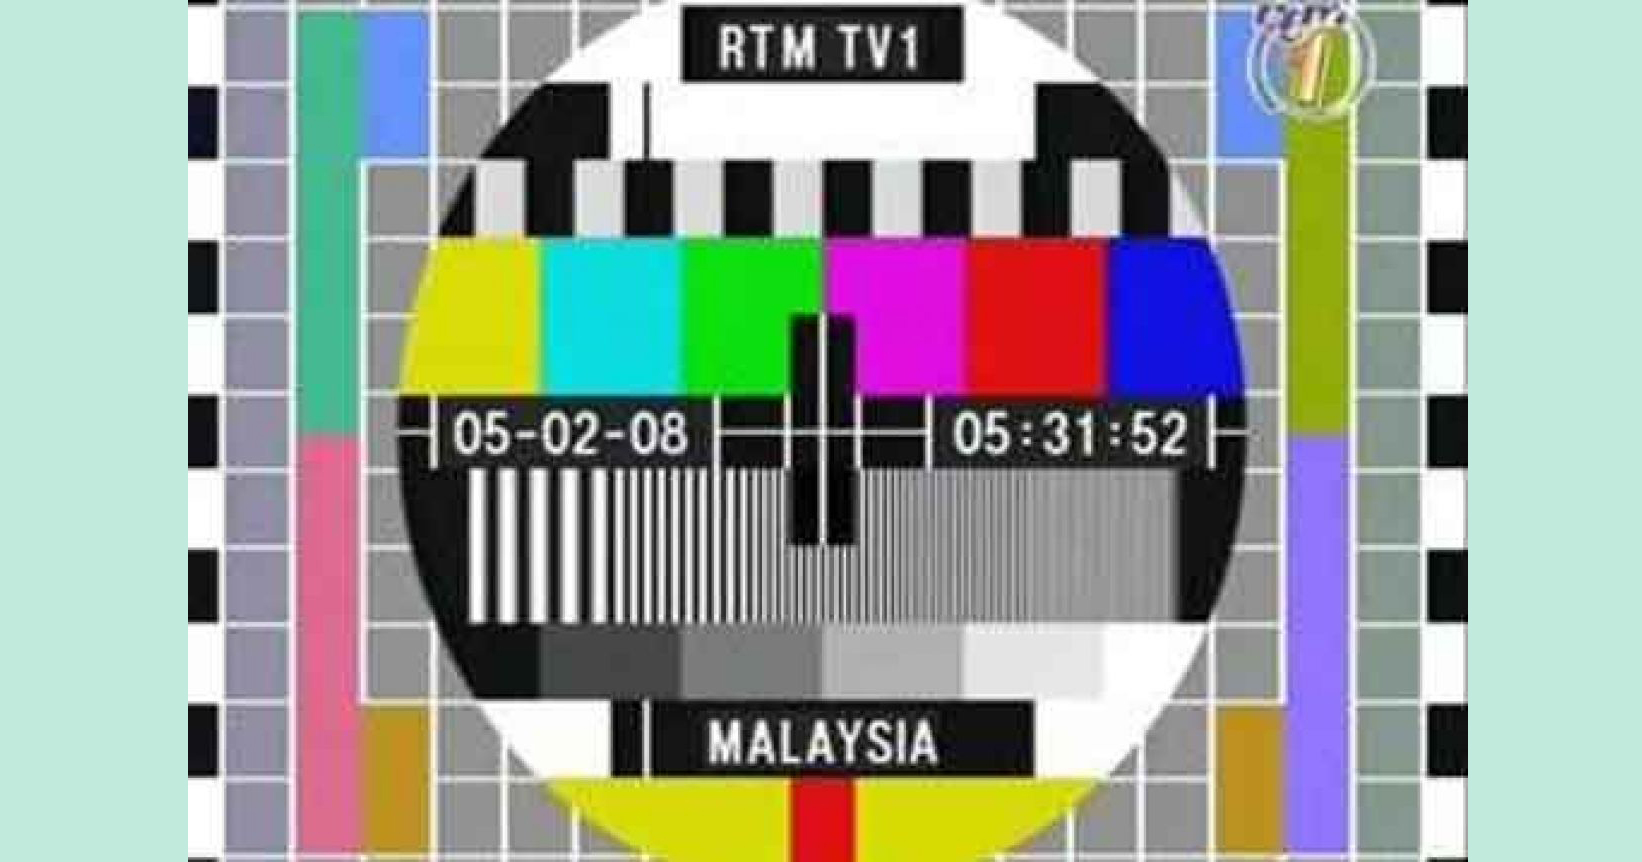 Signal scrambled so World Cup 2018 on RTM TV 1 not shown in S'pore